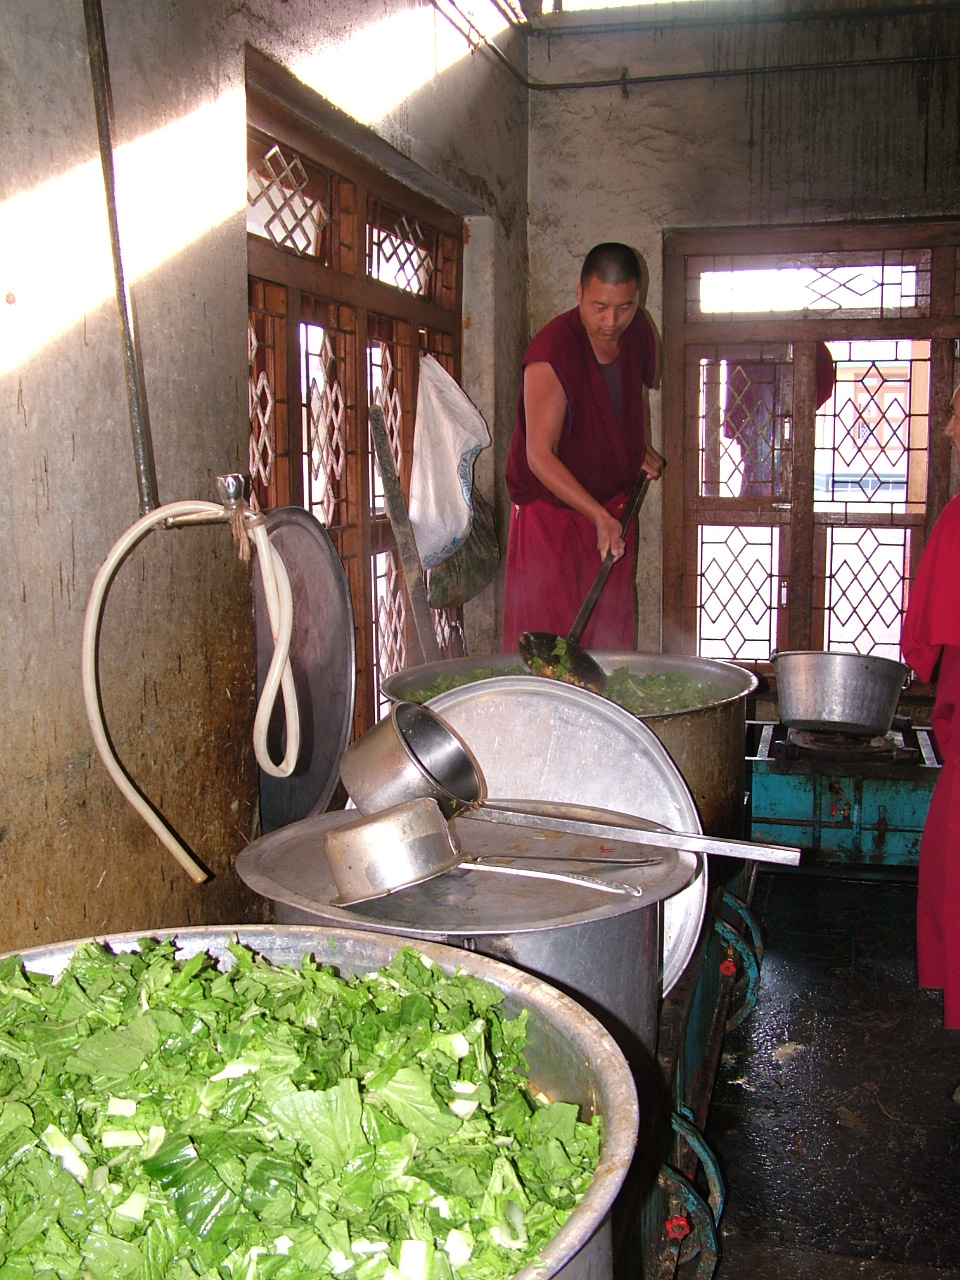 Food being cooked for the 2600 monks of Sera Je Monastery